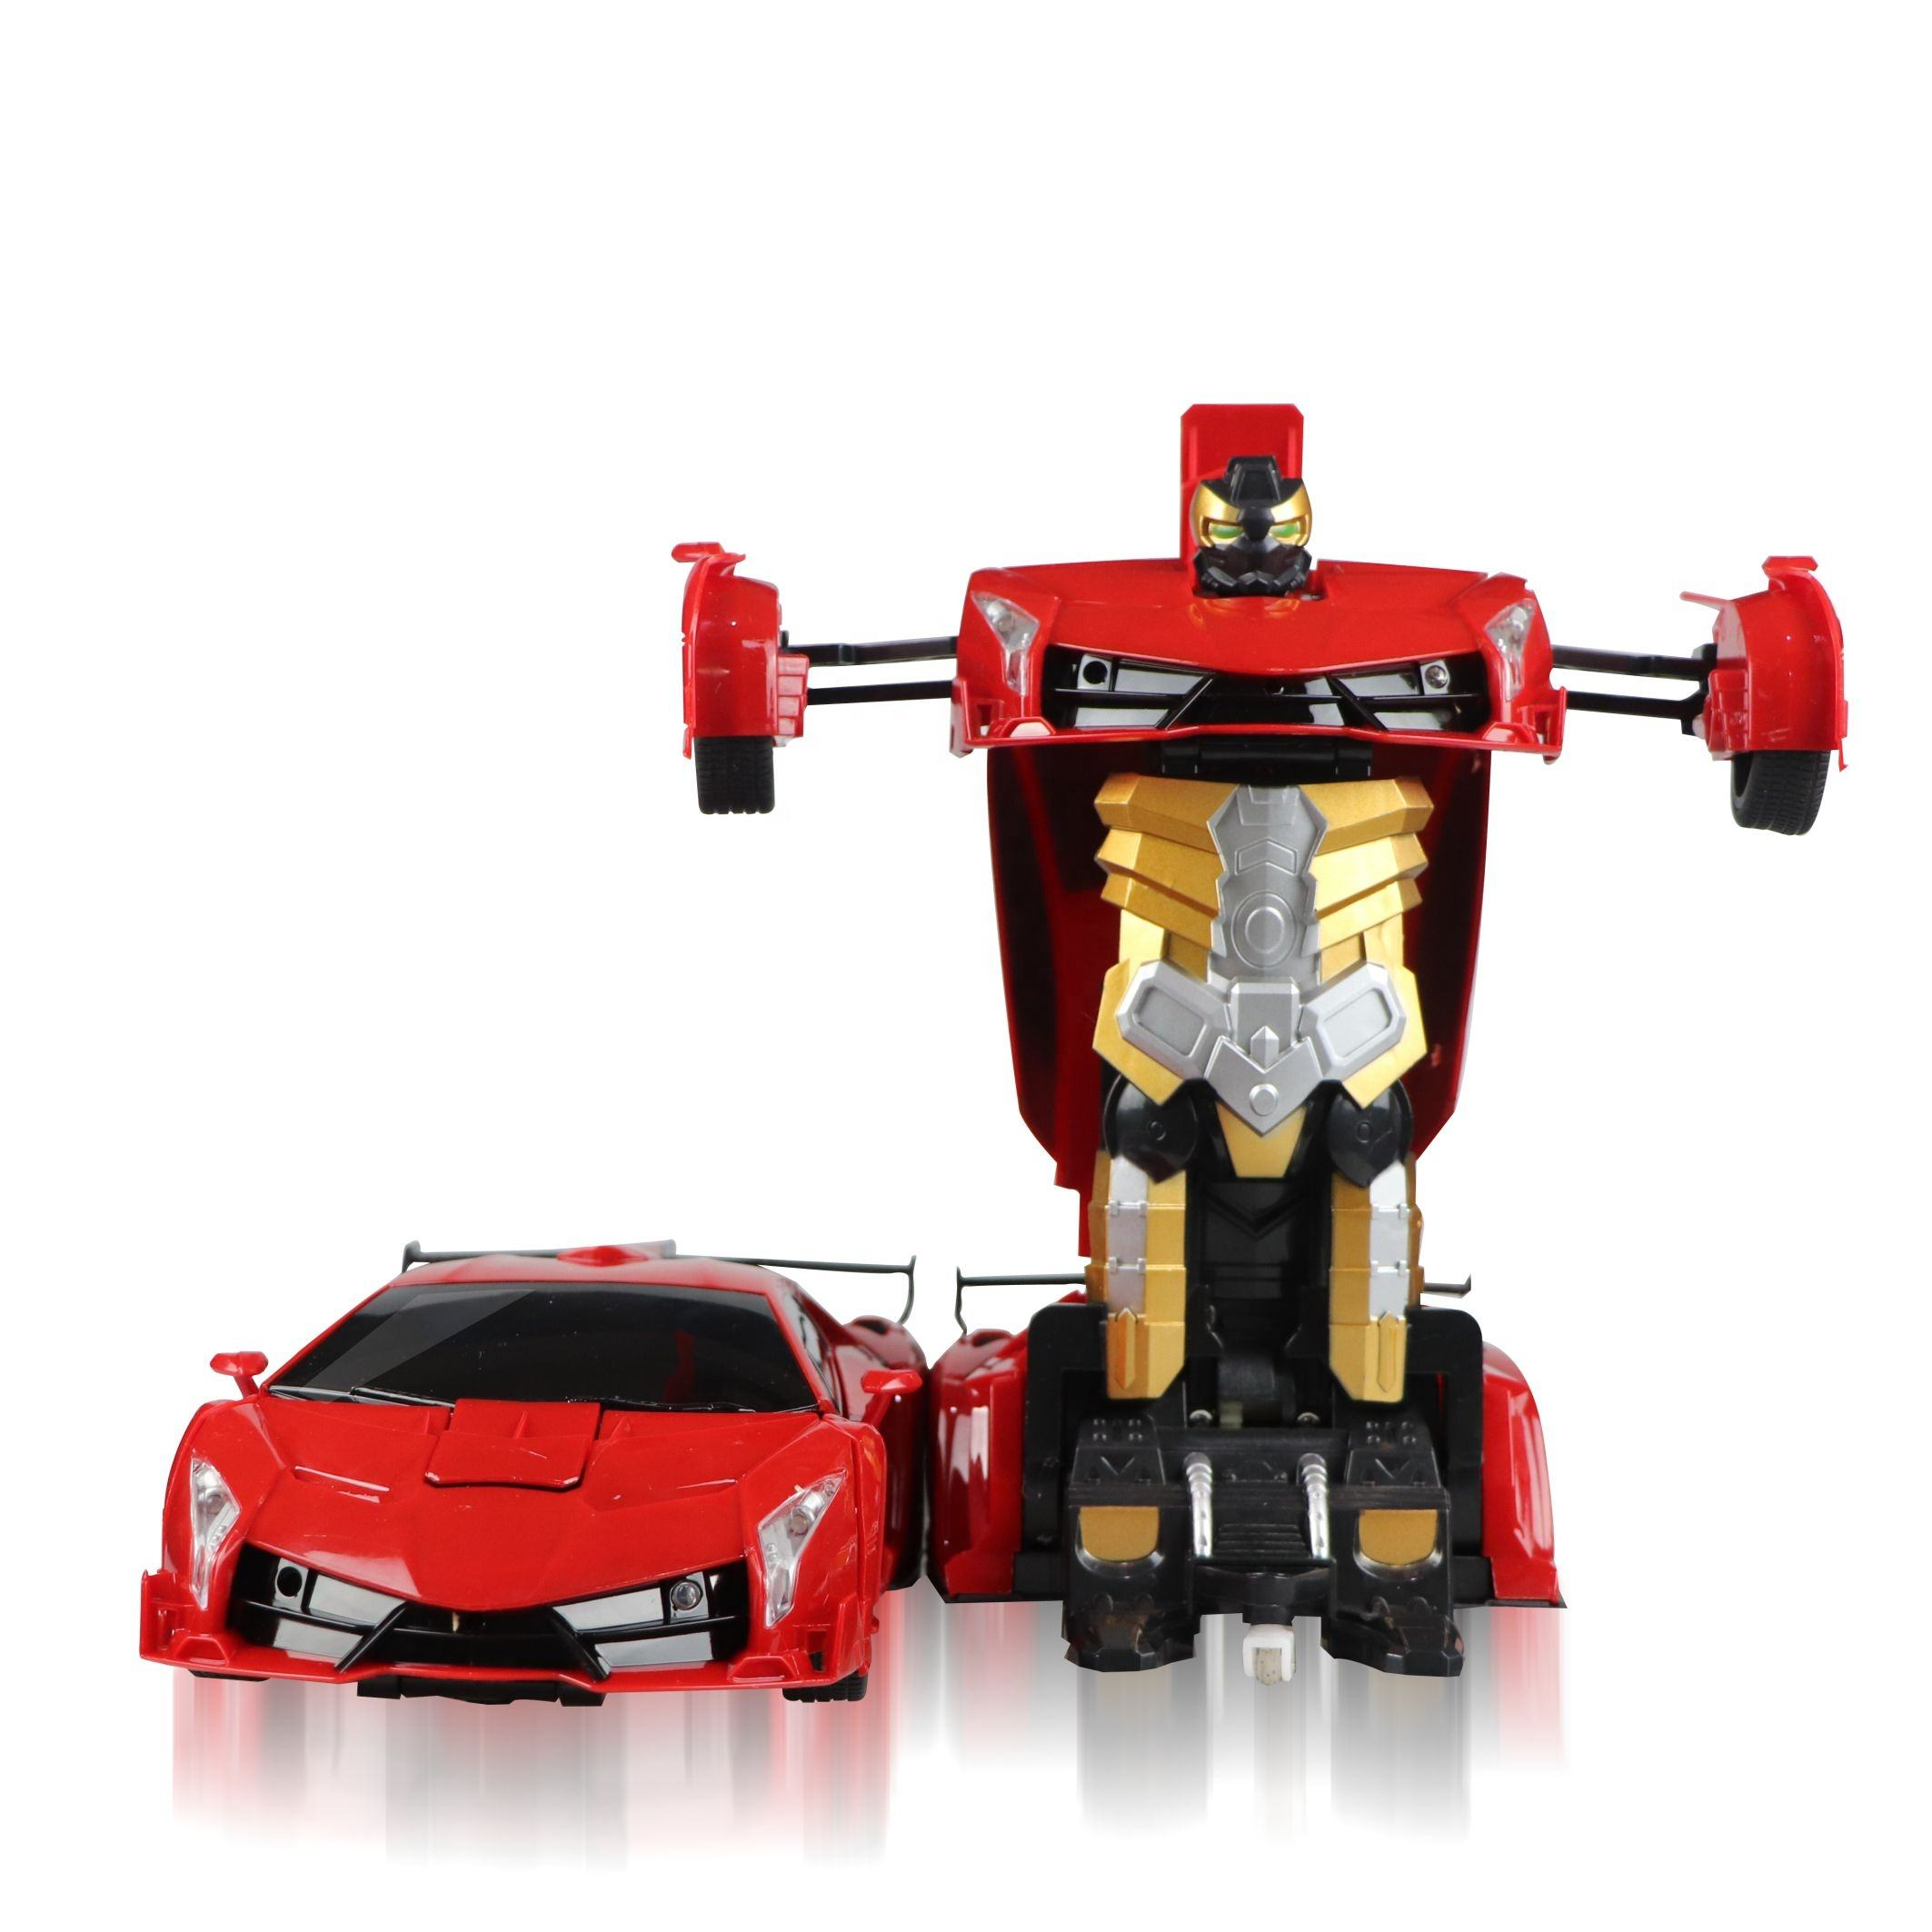 Wholesale rc transformation car toys for kids remote control robots,toy cars with remote control